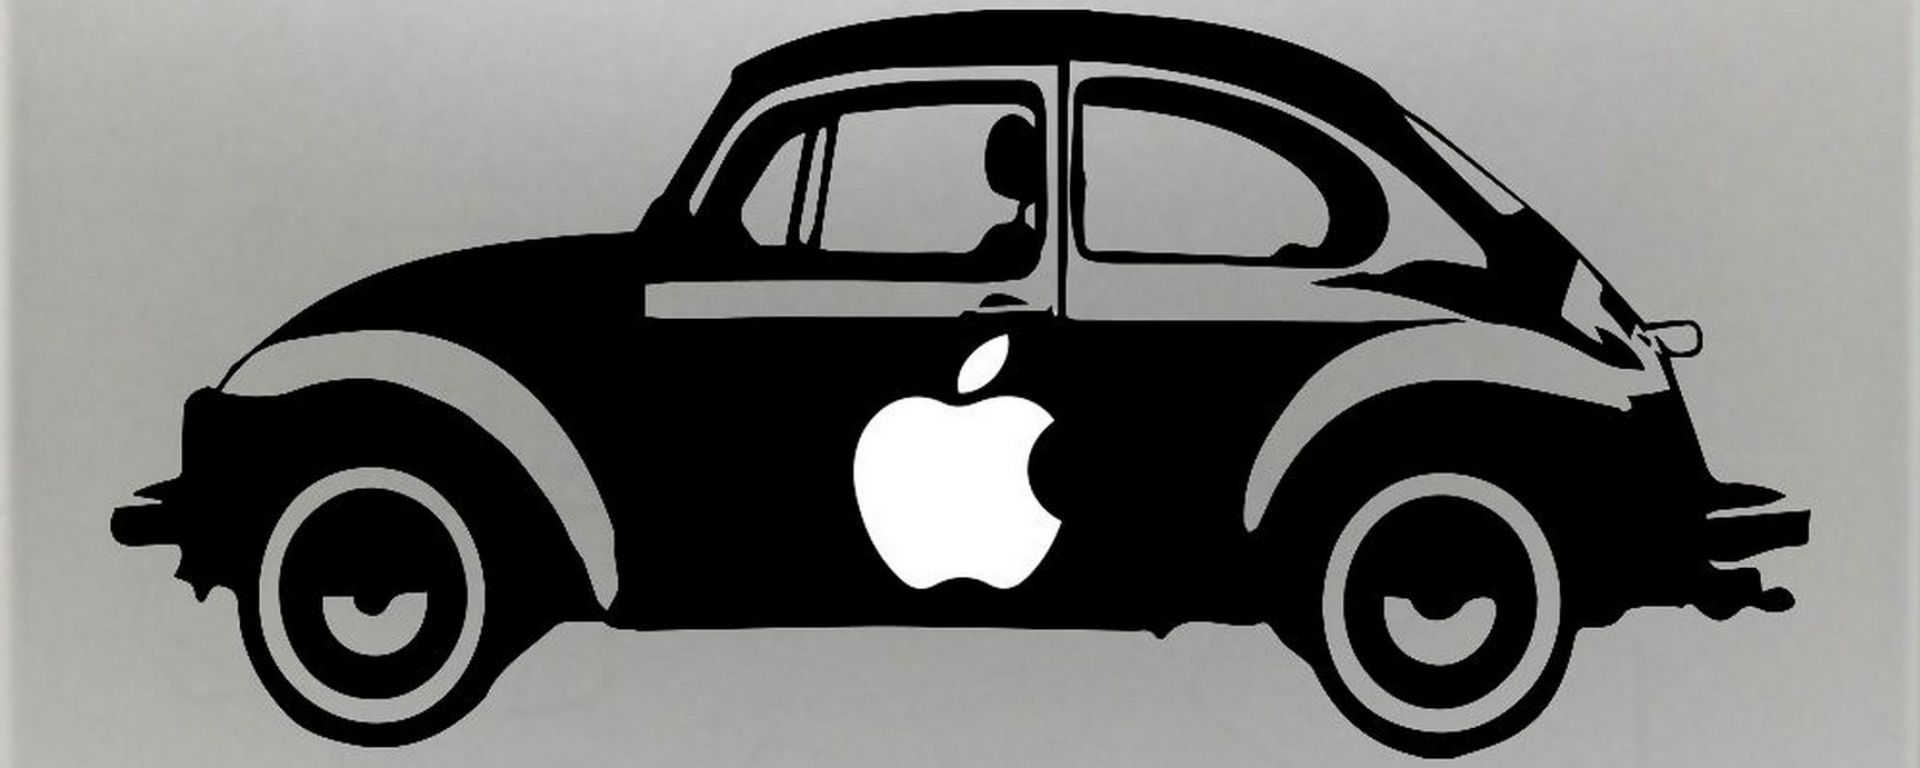 Apple e guida autonoma, partnership con Volkswagen